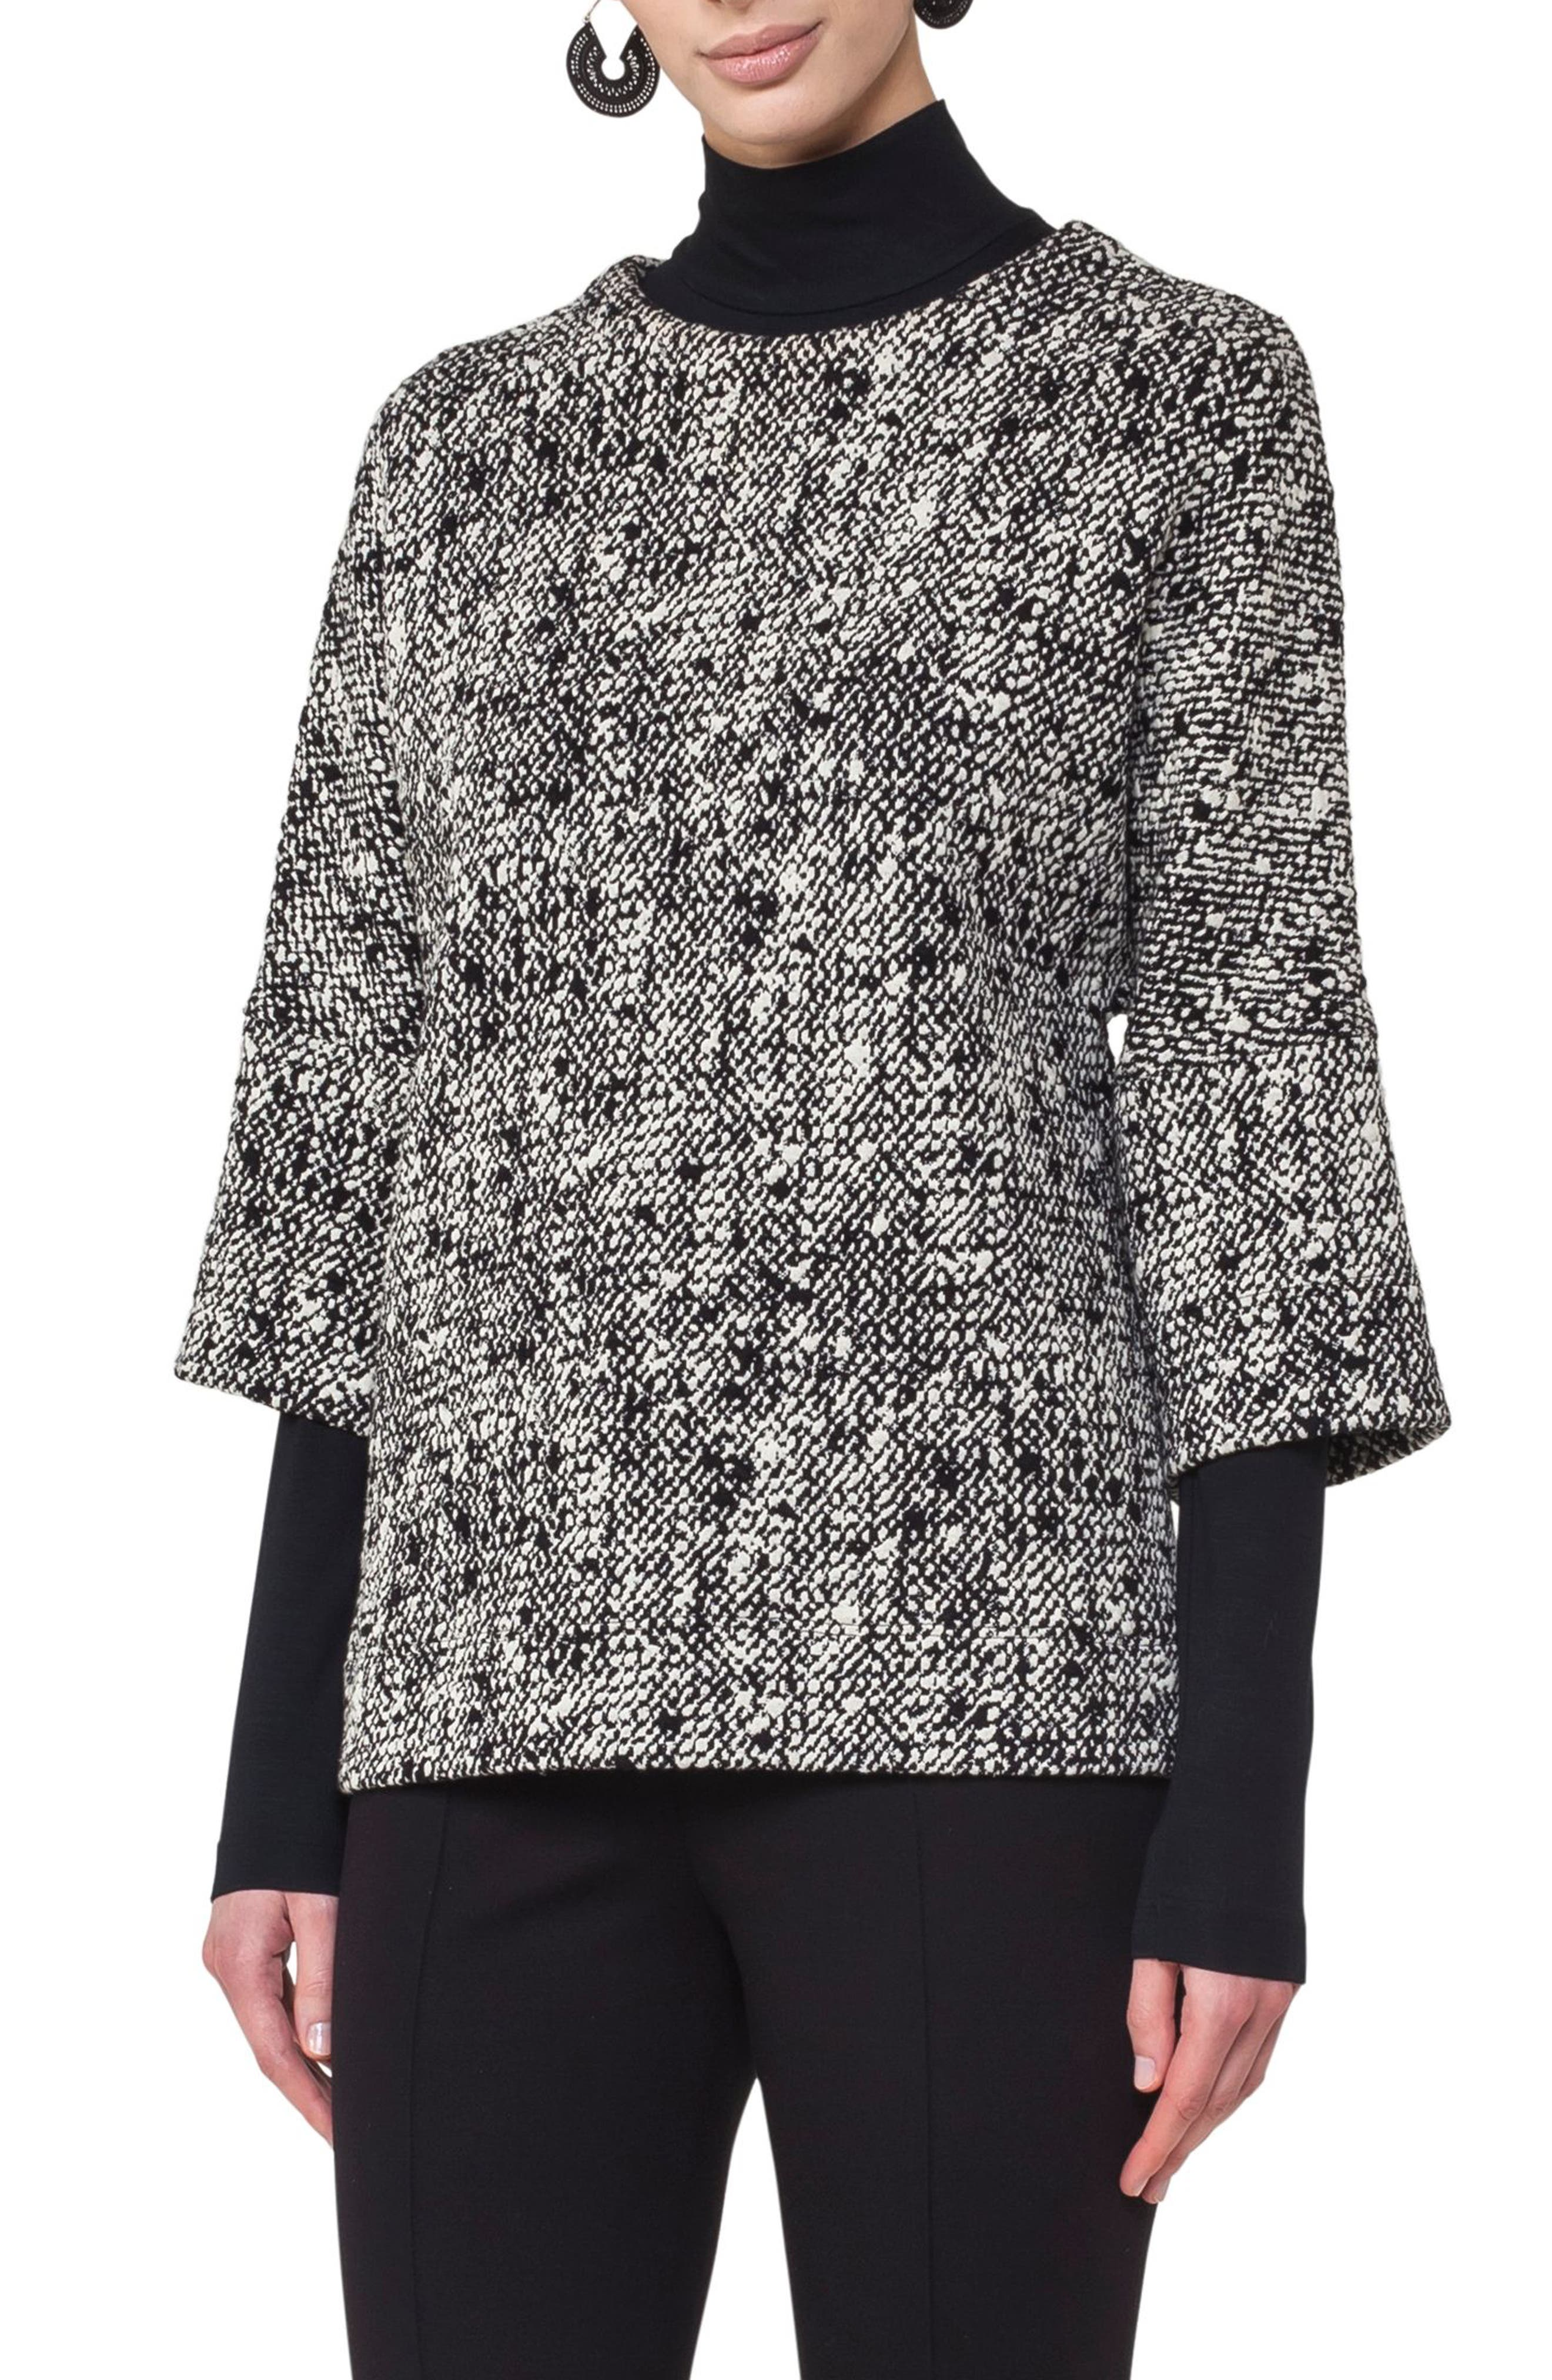 Cotton Blend Sweater,                         Main,                         color, Black-Cream